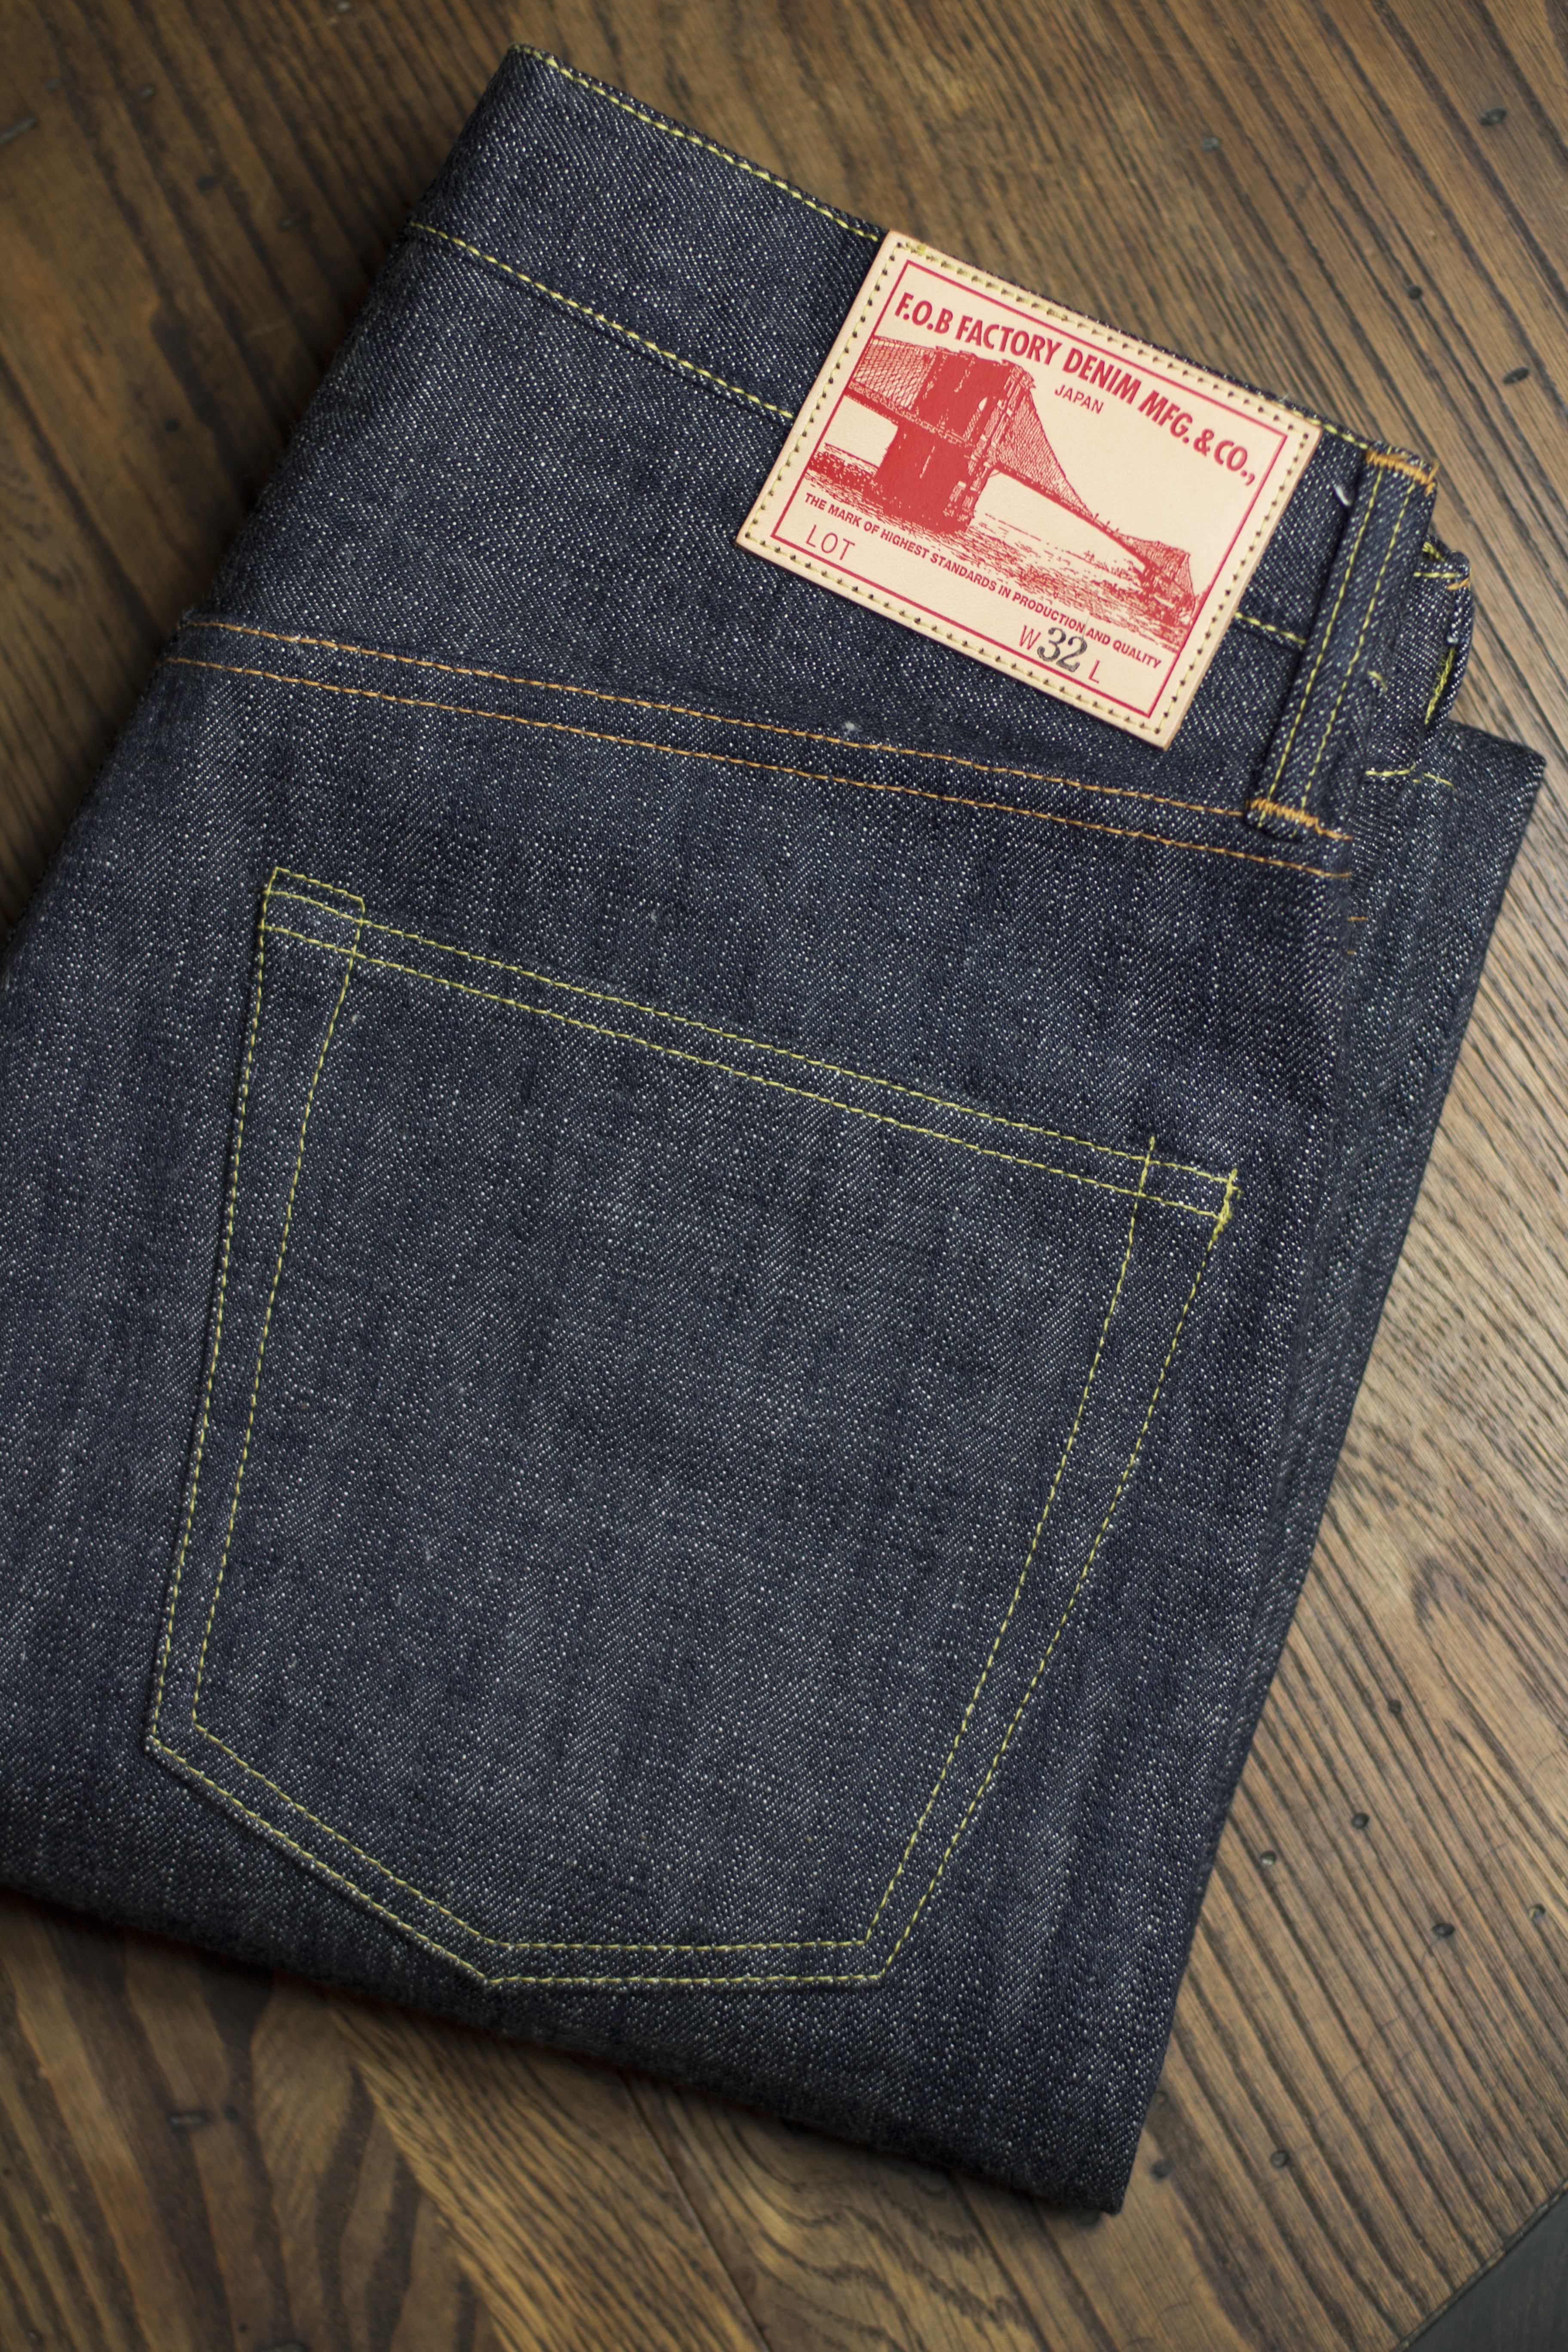 292a03d8ad8 For this very limited run project, FOB Factory has reproduced the 1950's  classic style denim, cut into a slim tapered jean and type II jacket.